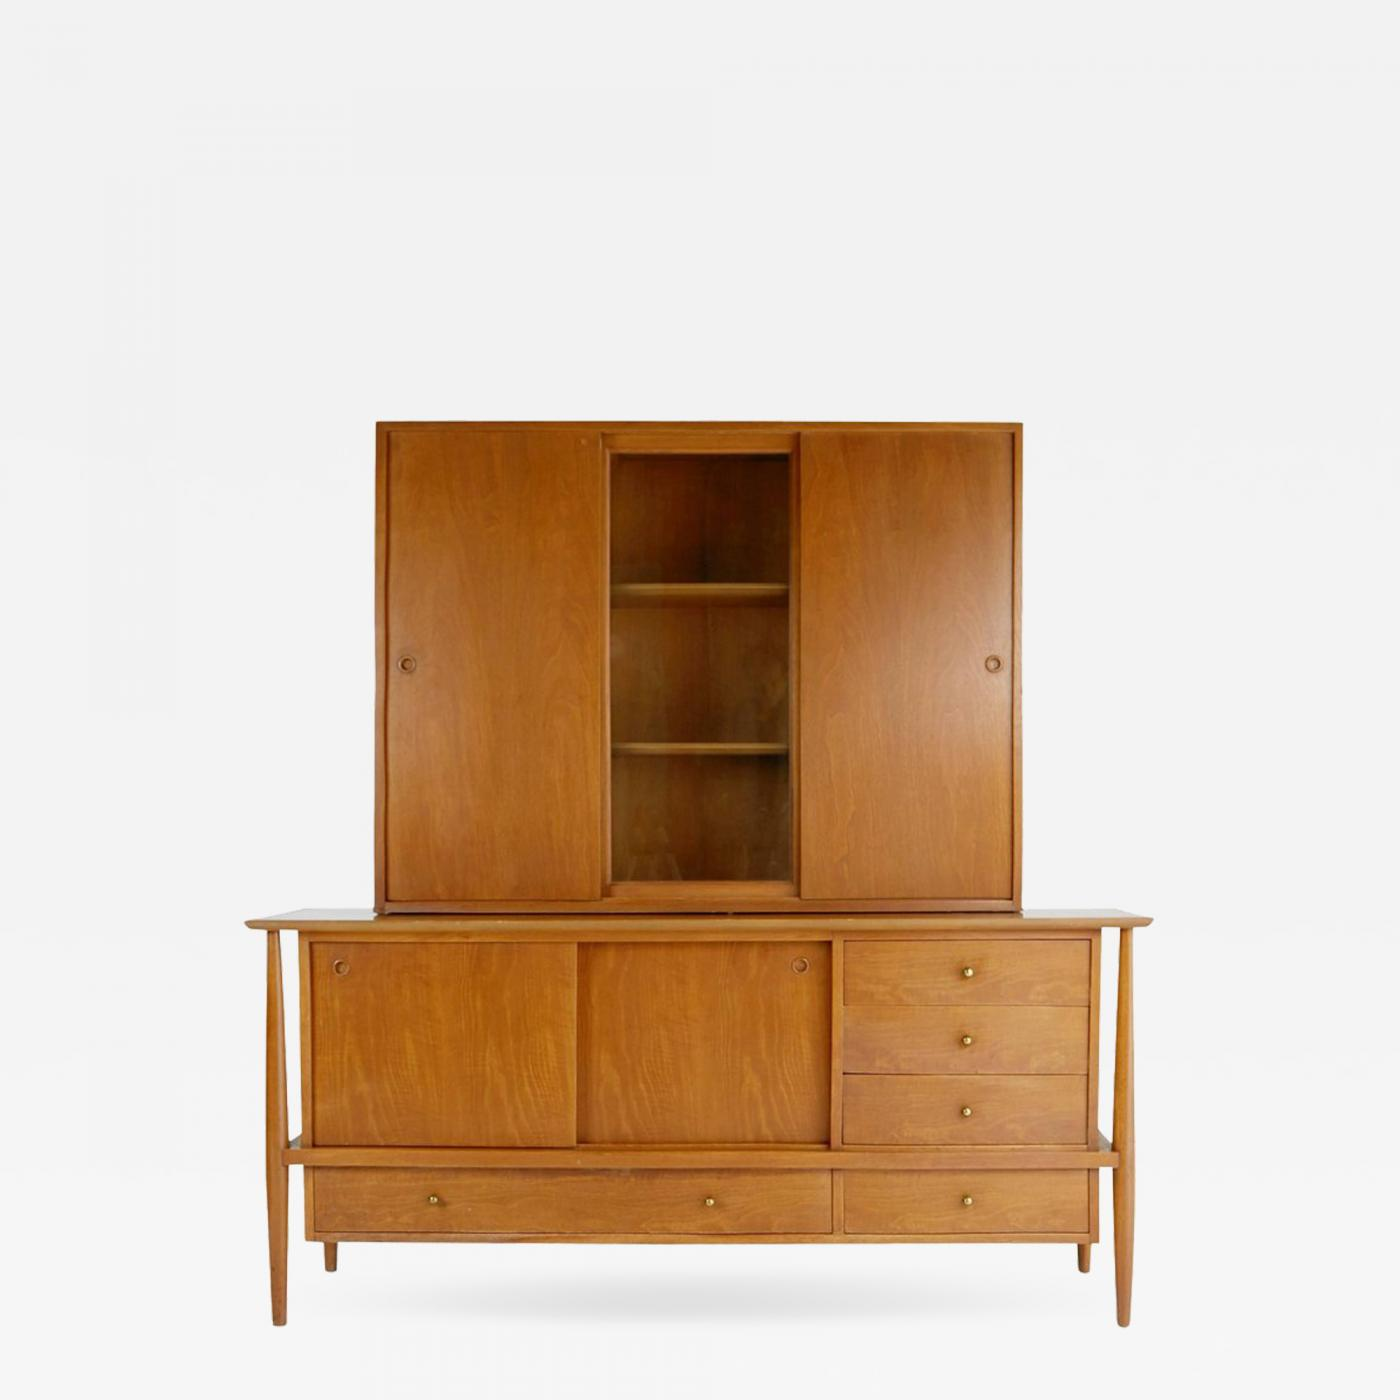 Listings furniture case pieces storage cabinets